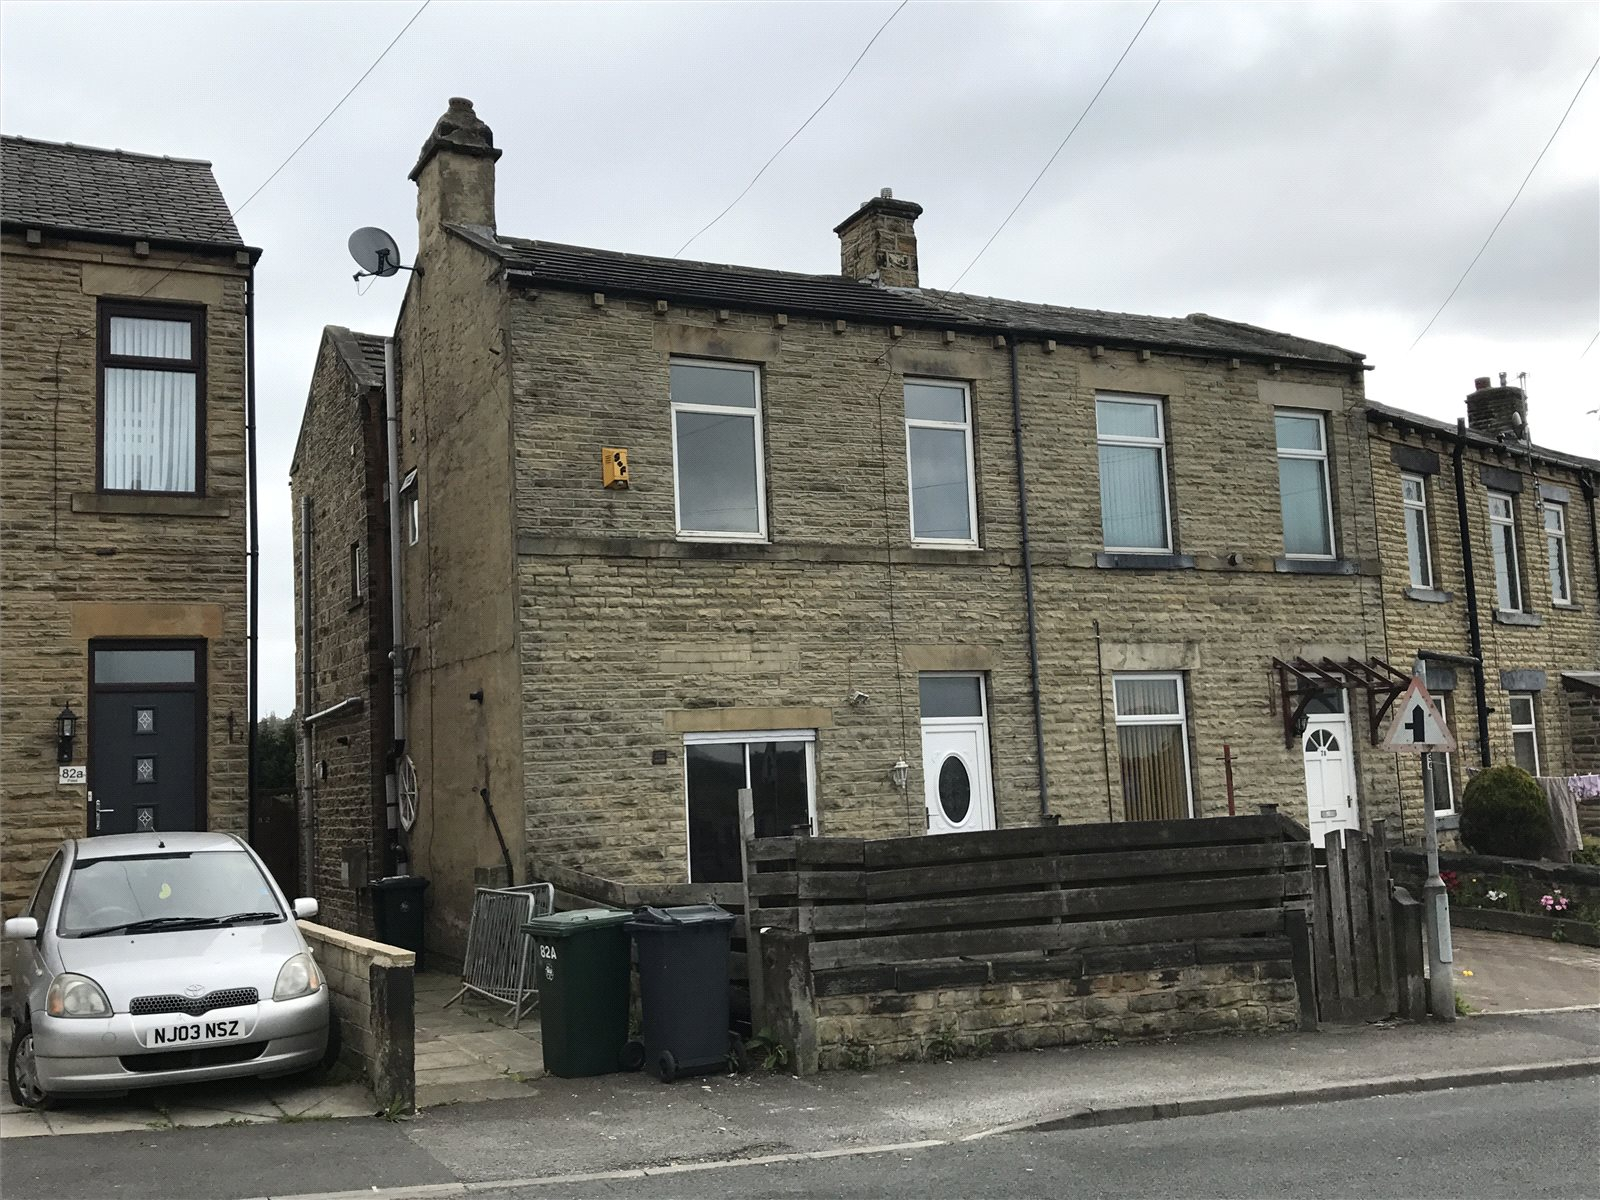 Whitegates Dewsbury 2 Bedroom House For Sale In Soothill